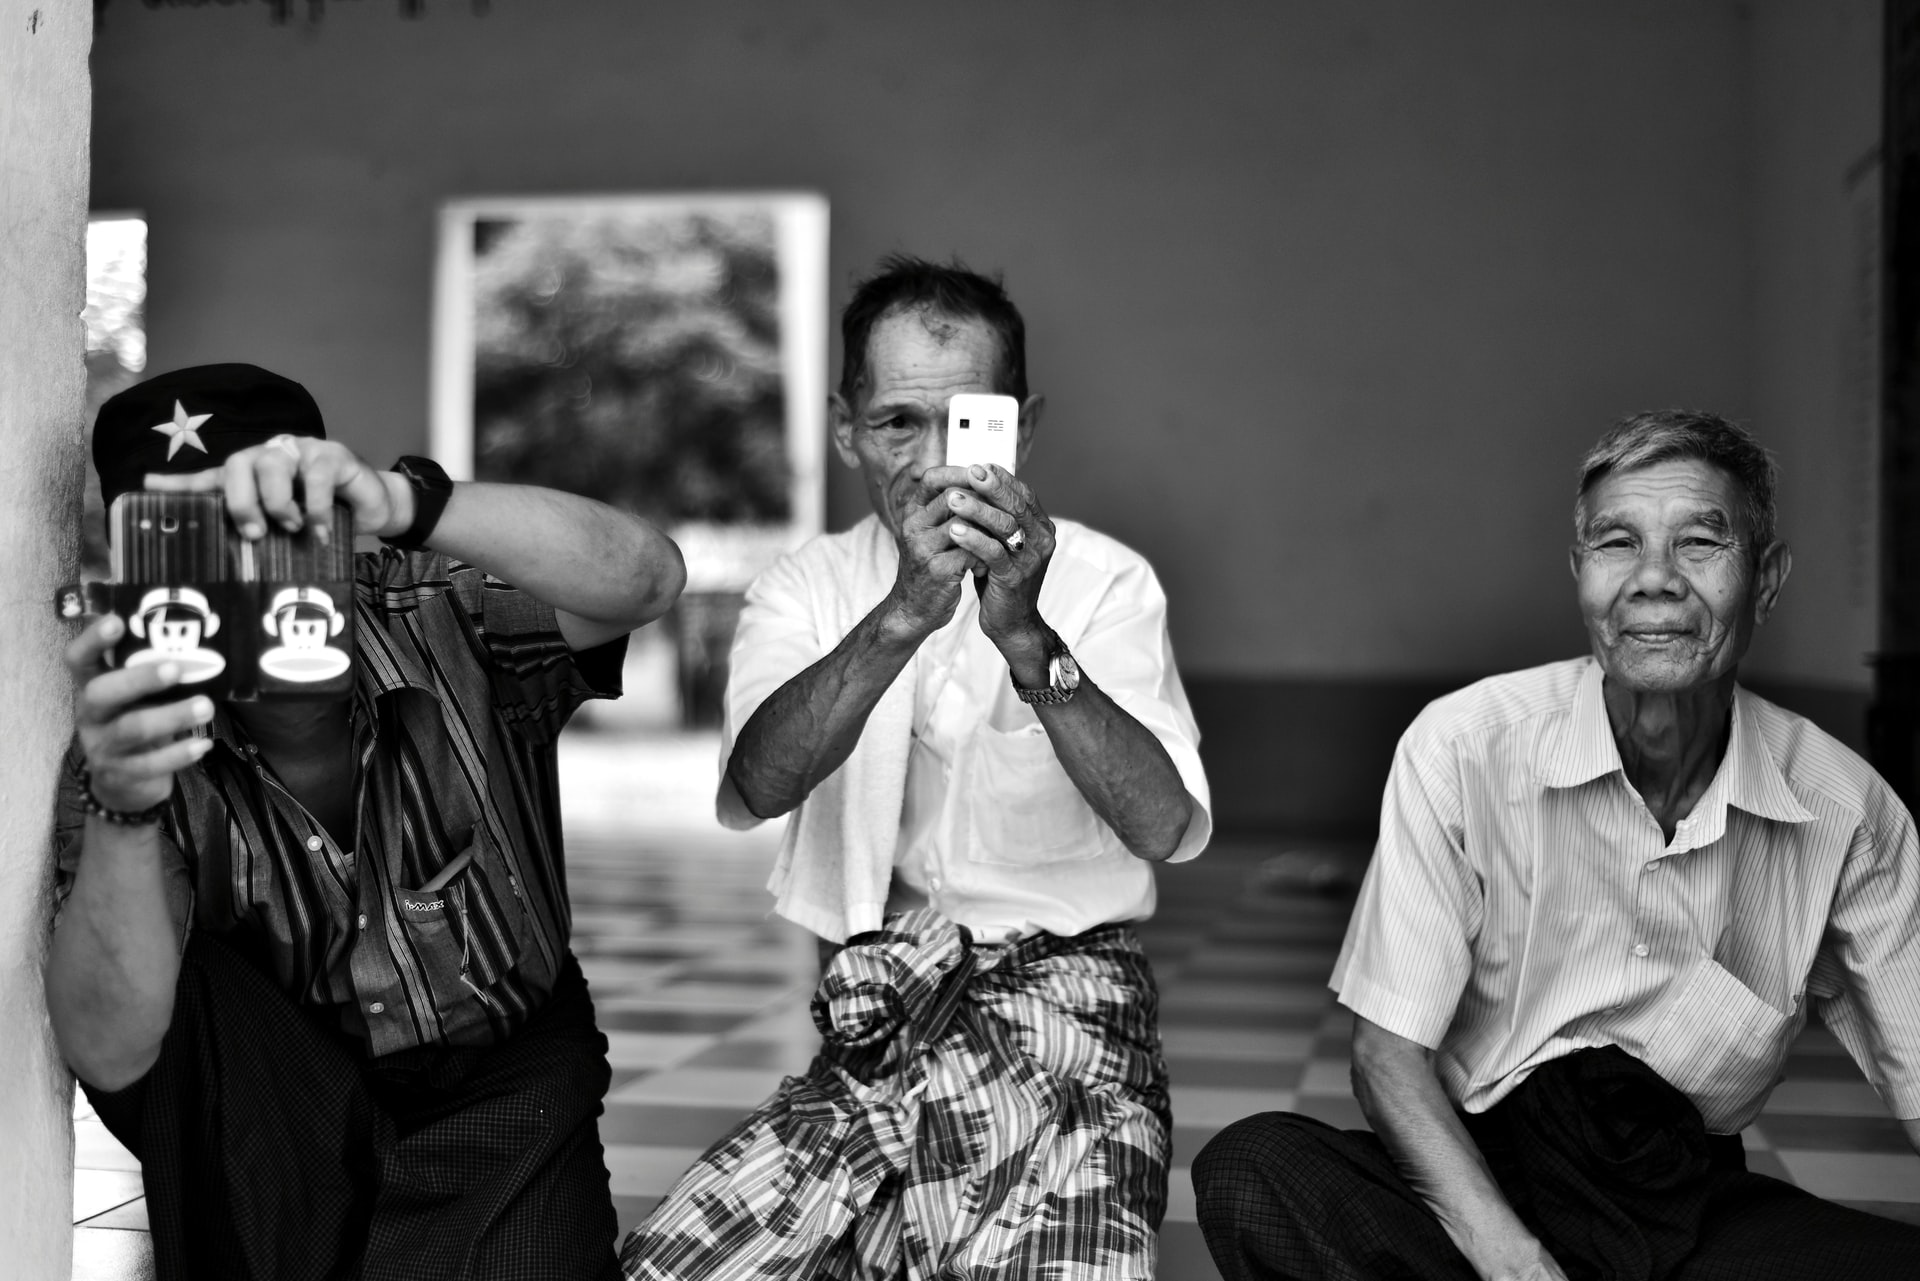 Phone users in Mandalay, Myanmar